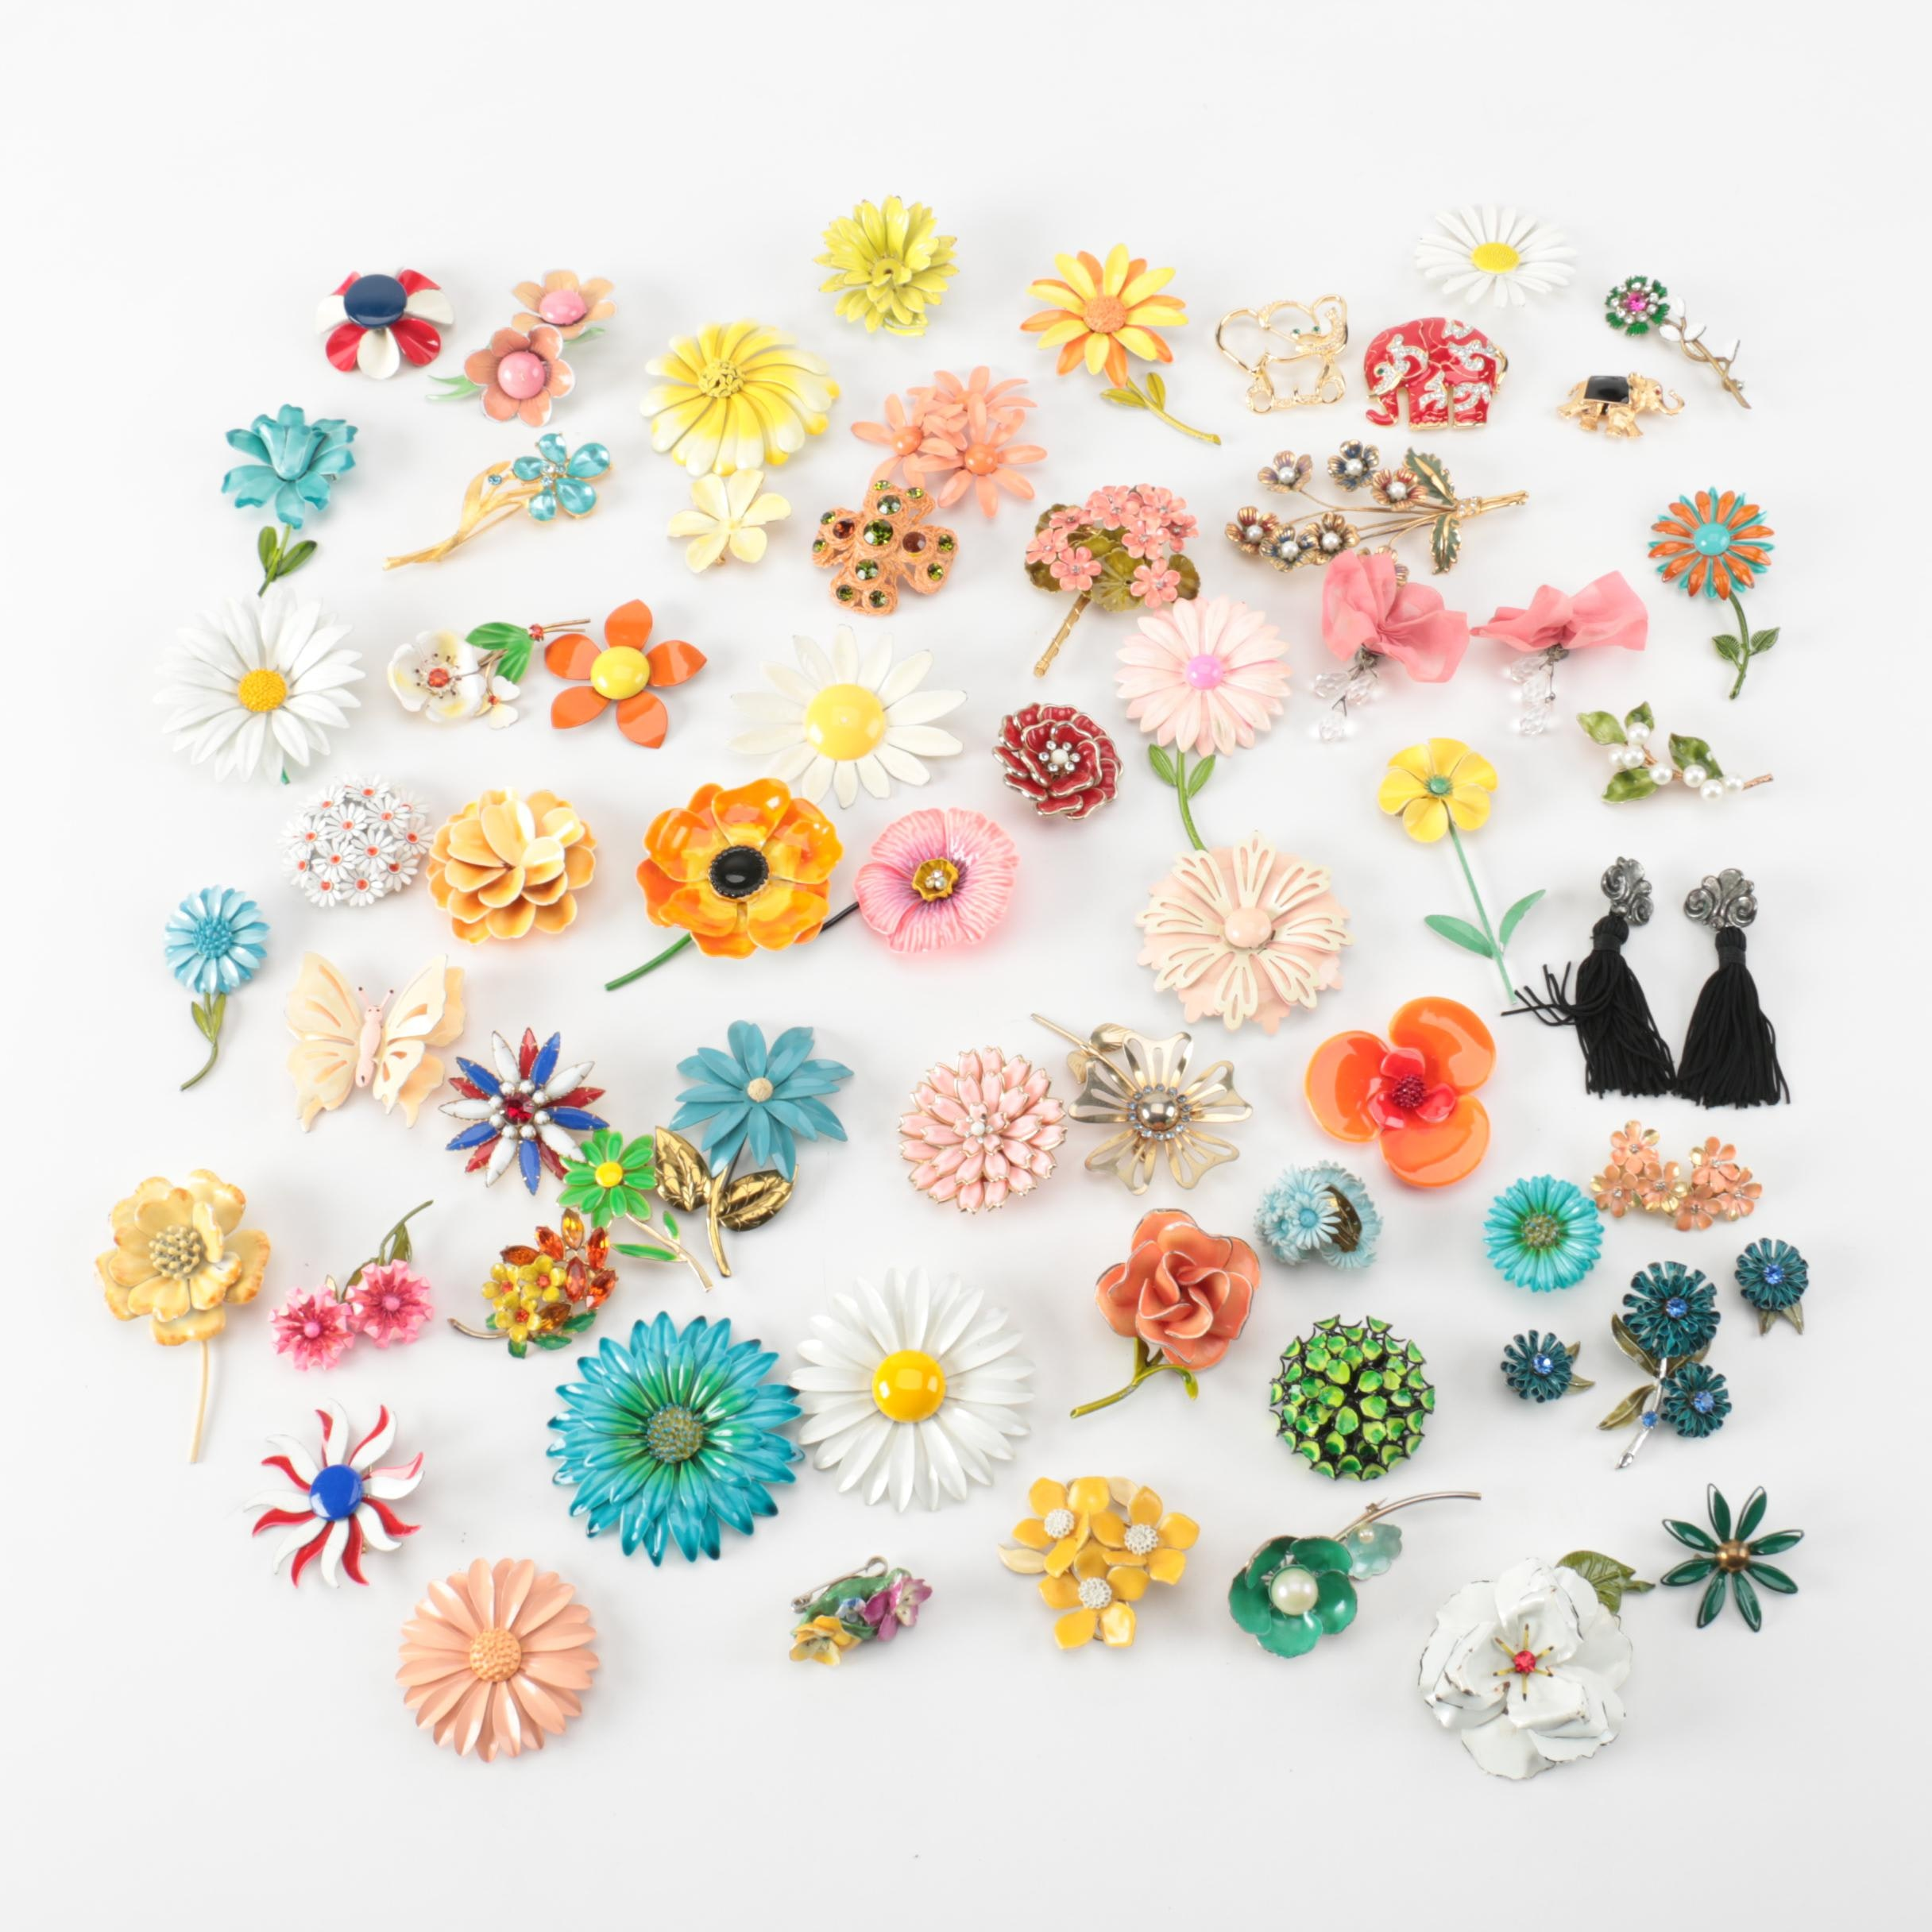 Assortment of Floral Brooches and Earrings Including Lisner, Coro and Hobé